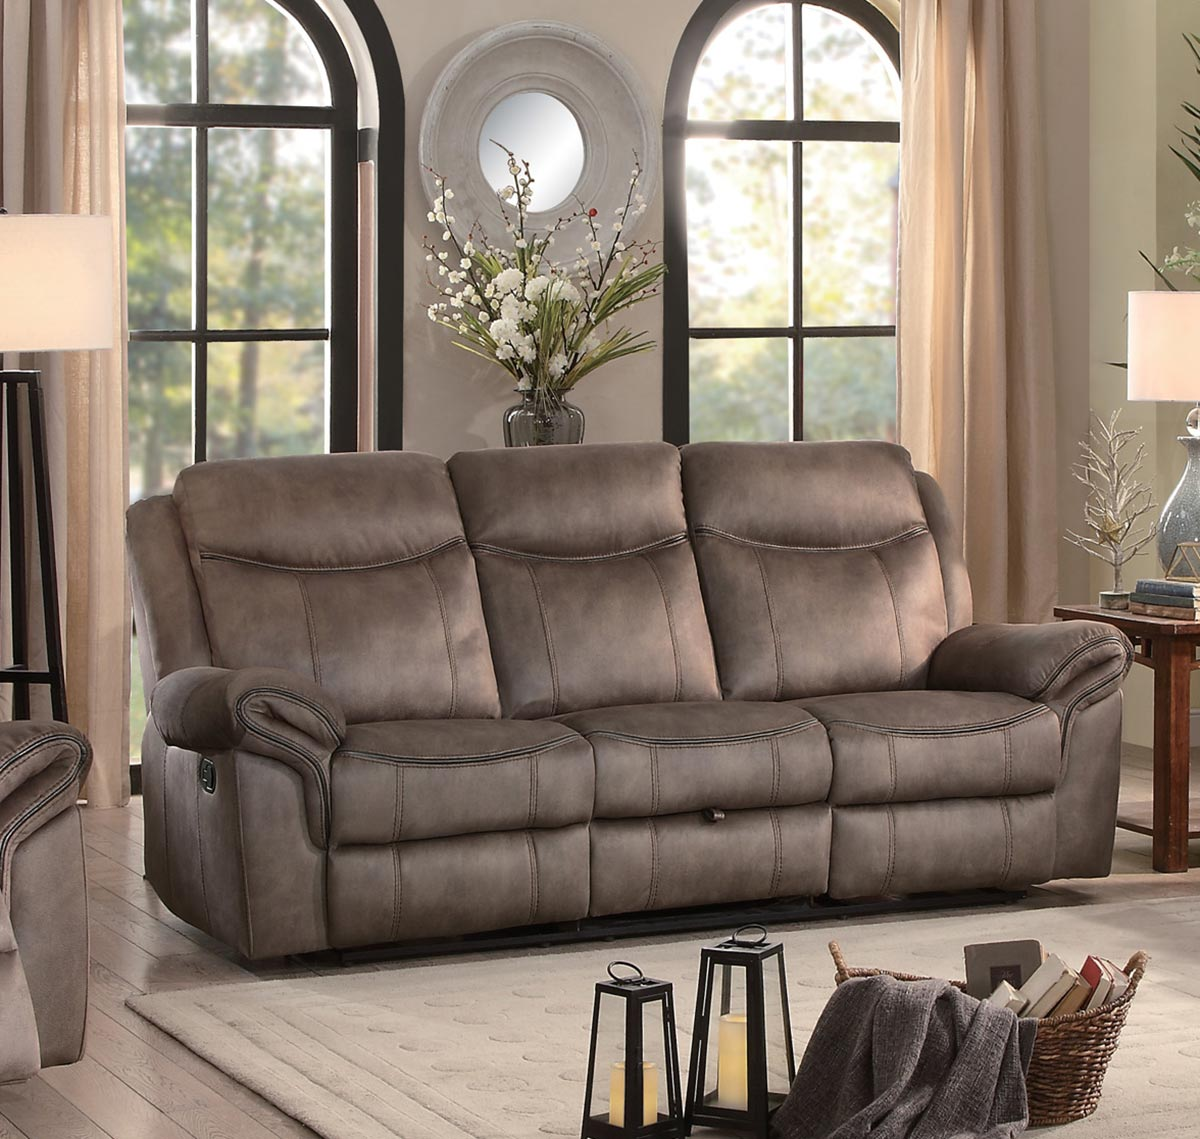 Homelegance Aram Double Reclining Sofa with Drop-Down ...